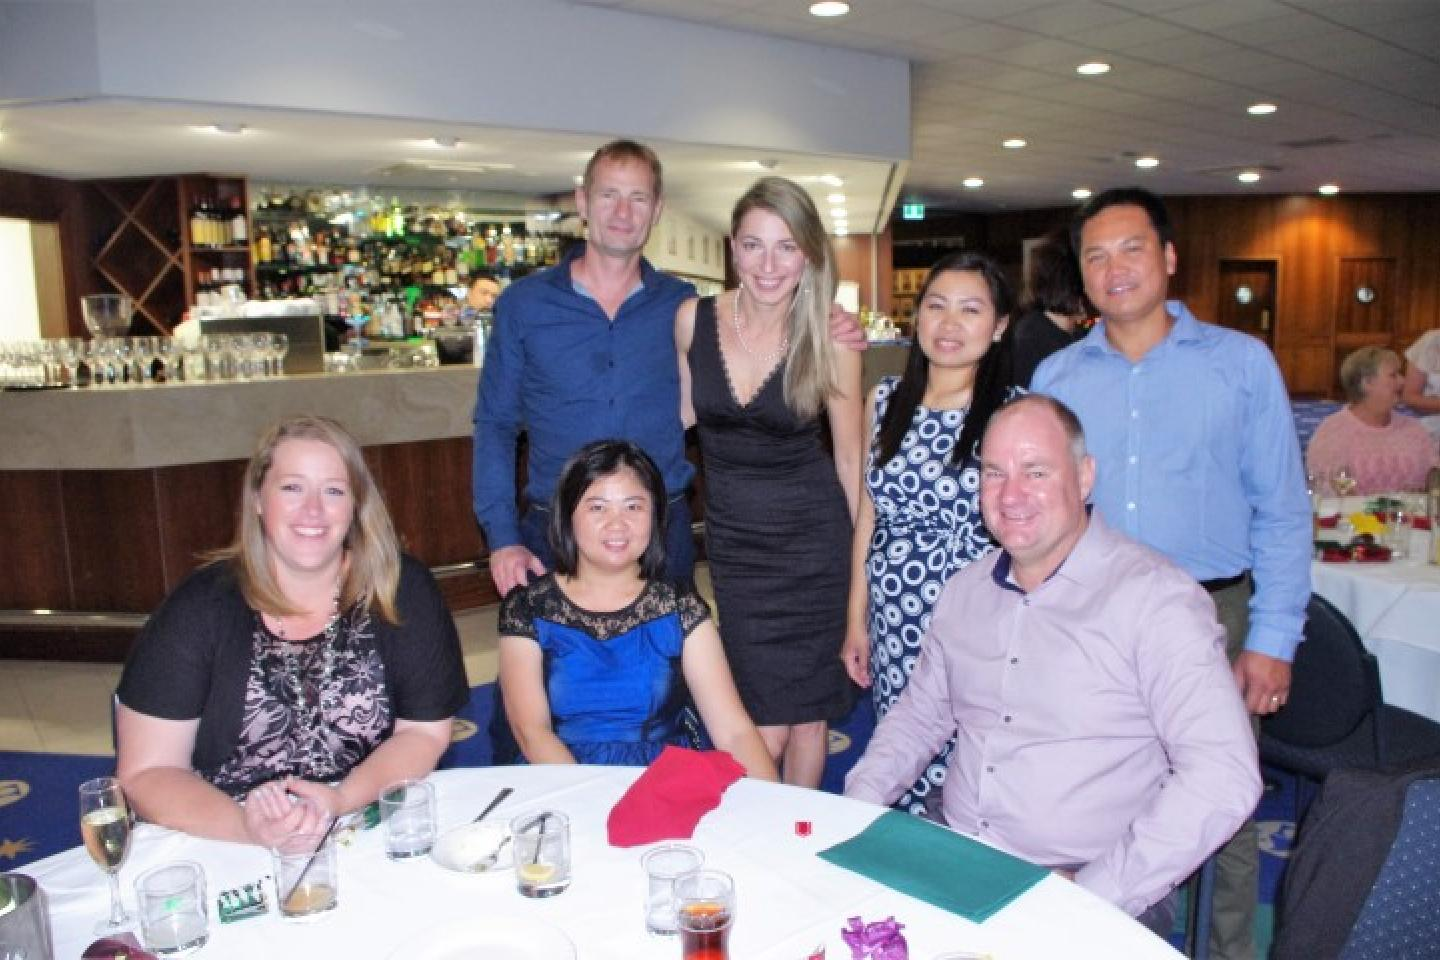 Lemara Pereira (left), Mandy Tham, Paul Dobrowolski and Mila Zigelman and Rebekah and Rey Bautista (standing) and Chris Farmer.